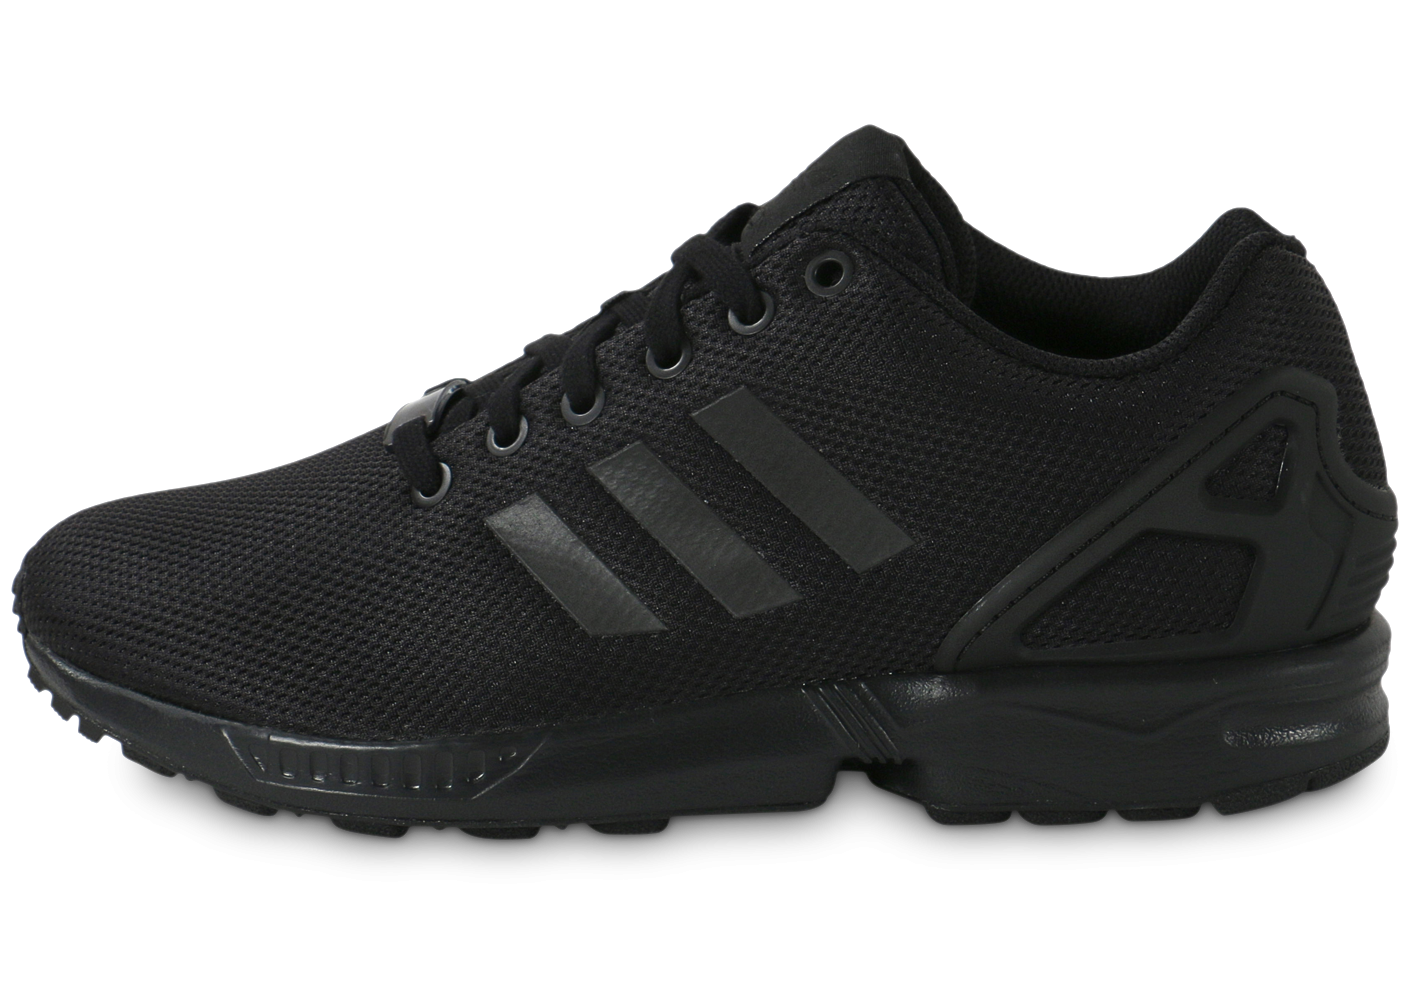 ee750e4a2a 49536 0b14f; italy basket adidas originals zx flux junior s74954 adidas zx  flux sneakers adidas zx flux or